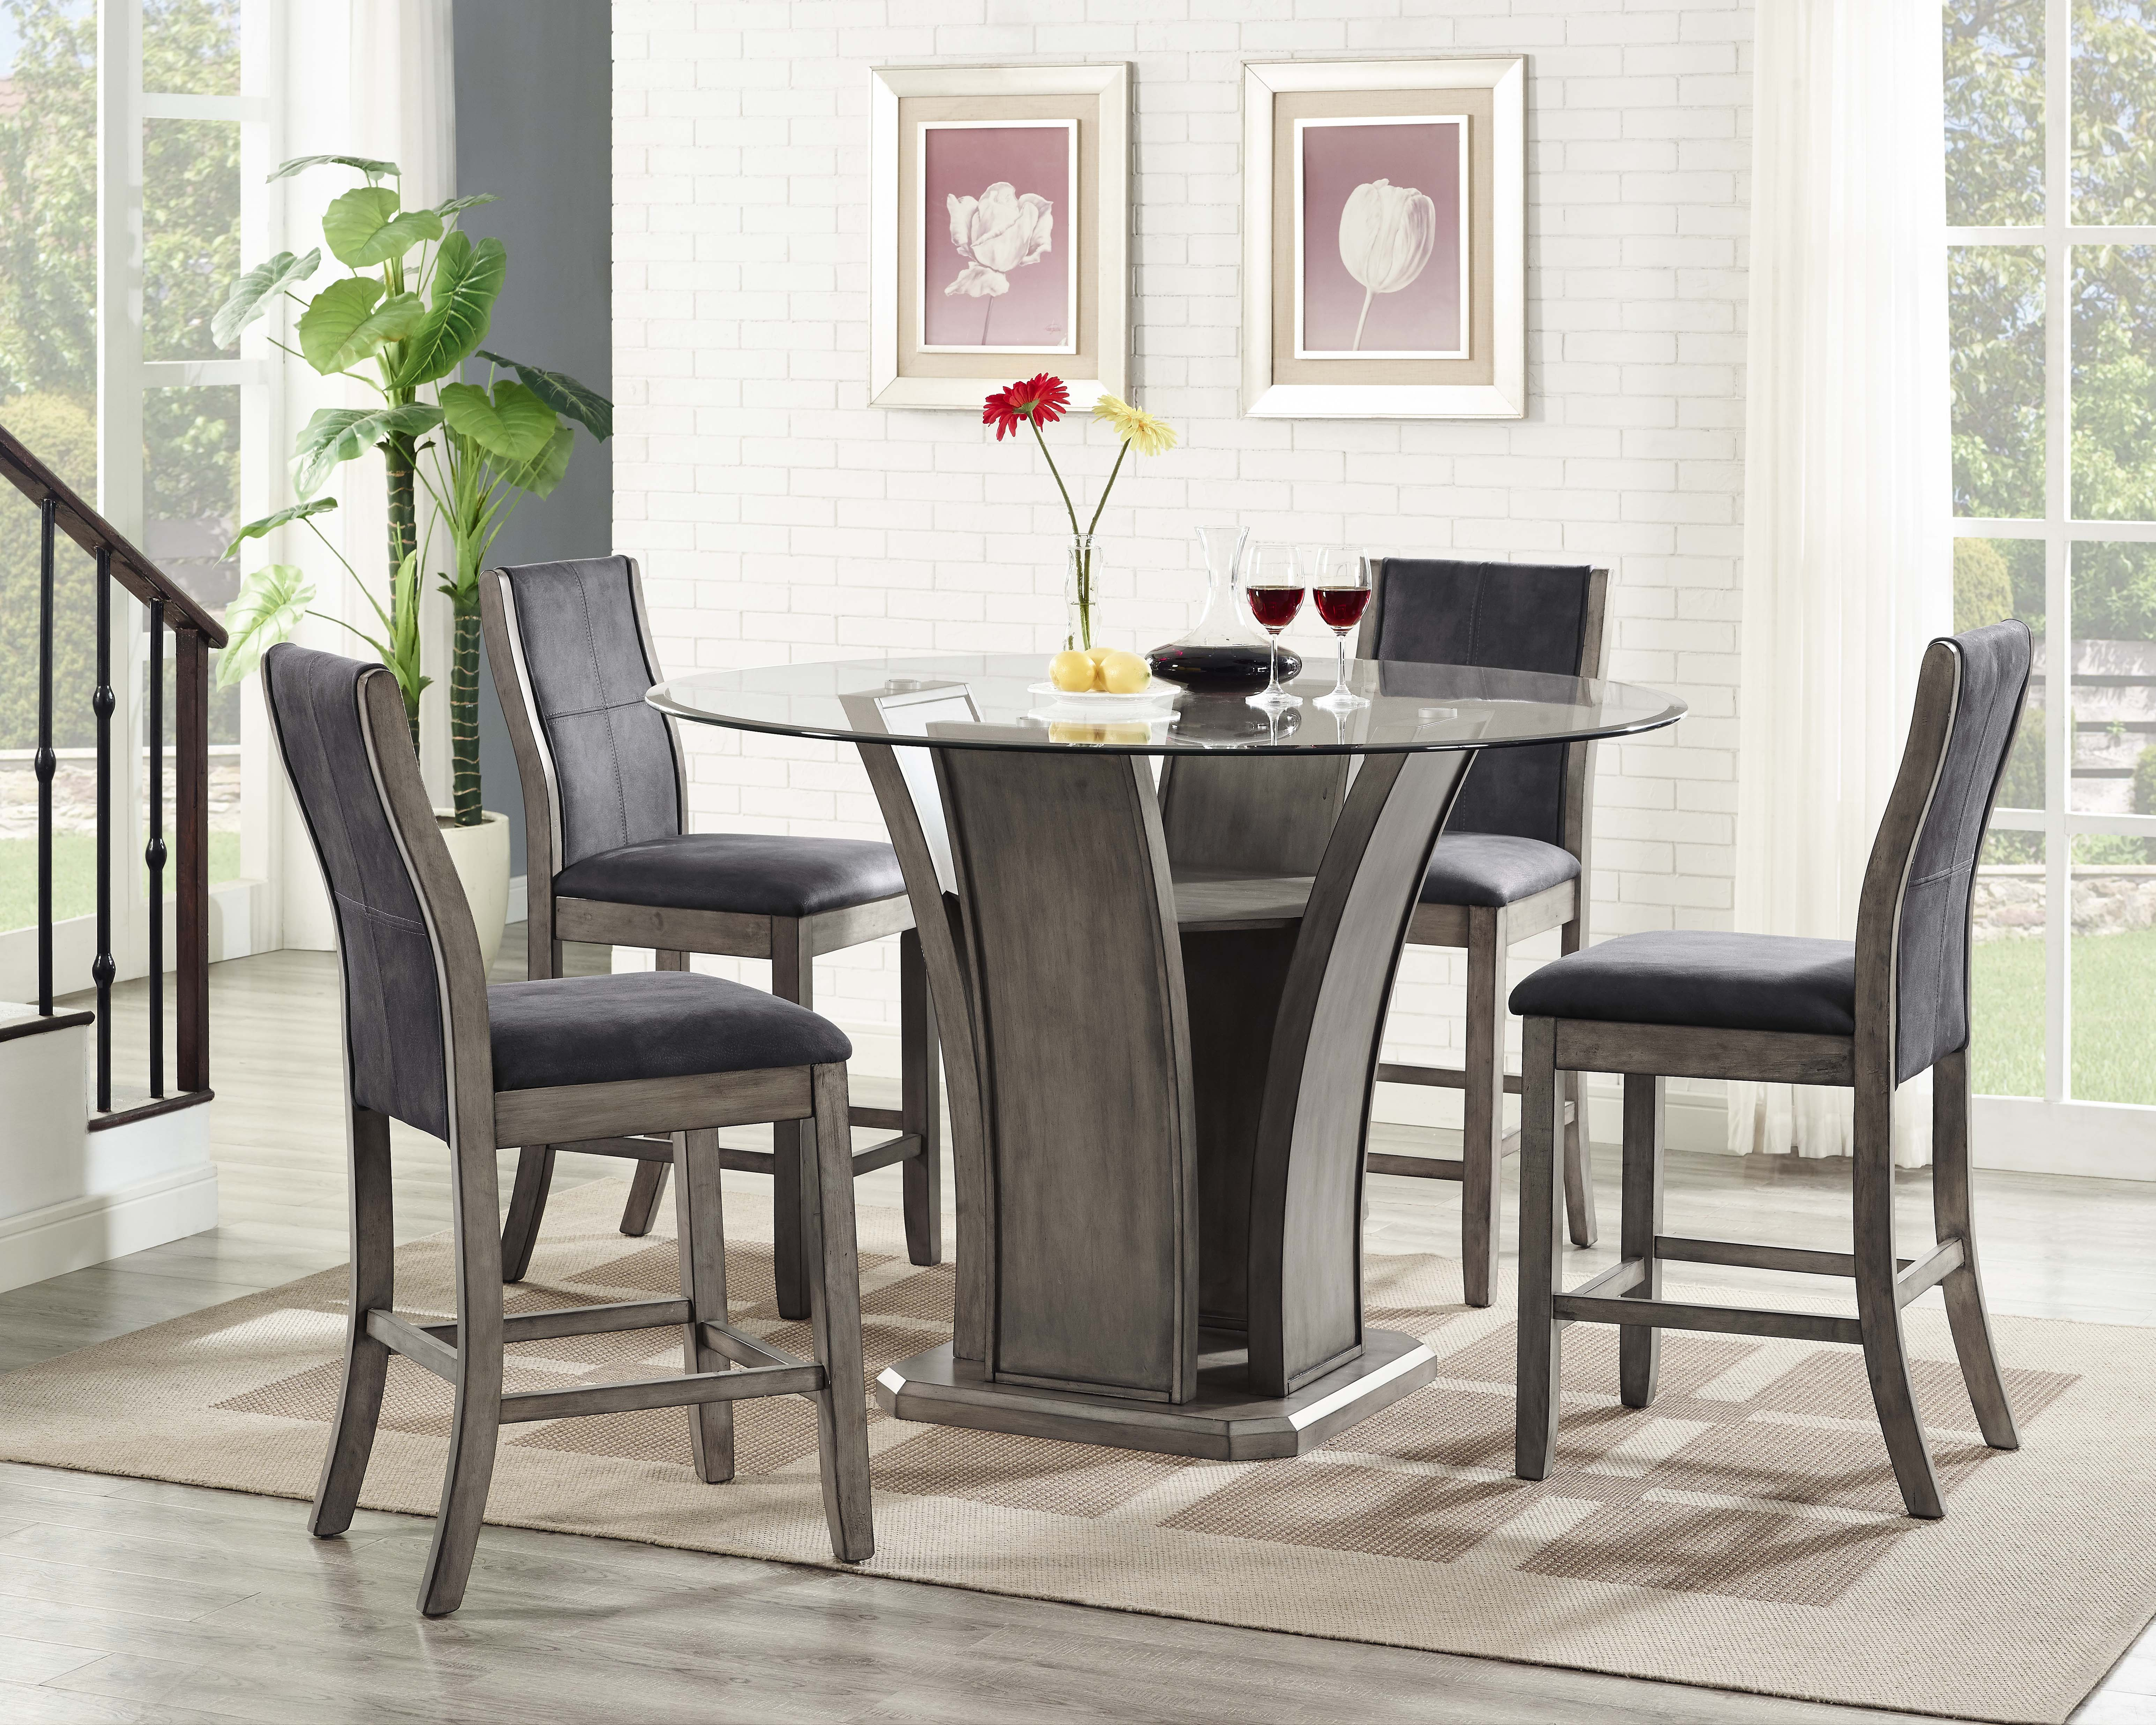 Picket House Furnishings Dylan Round Counter 5PC Dining Set Table U0026 4 Side  Chairs